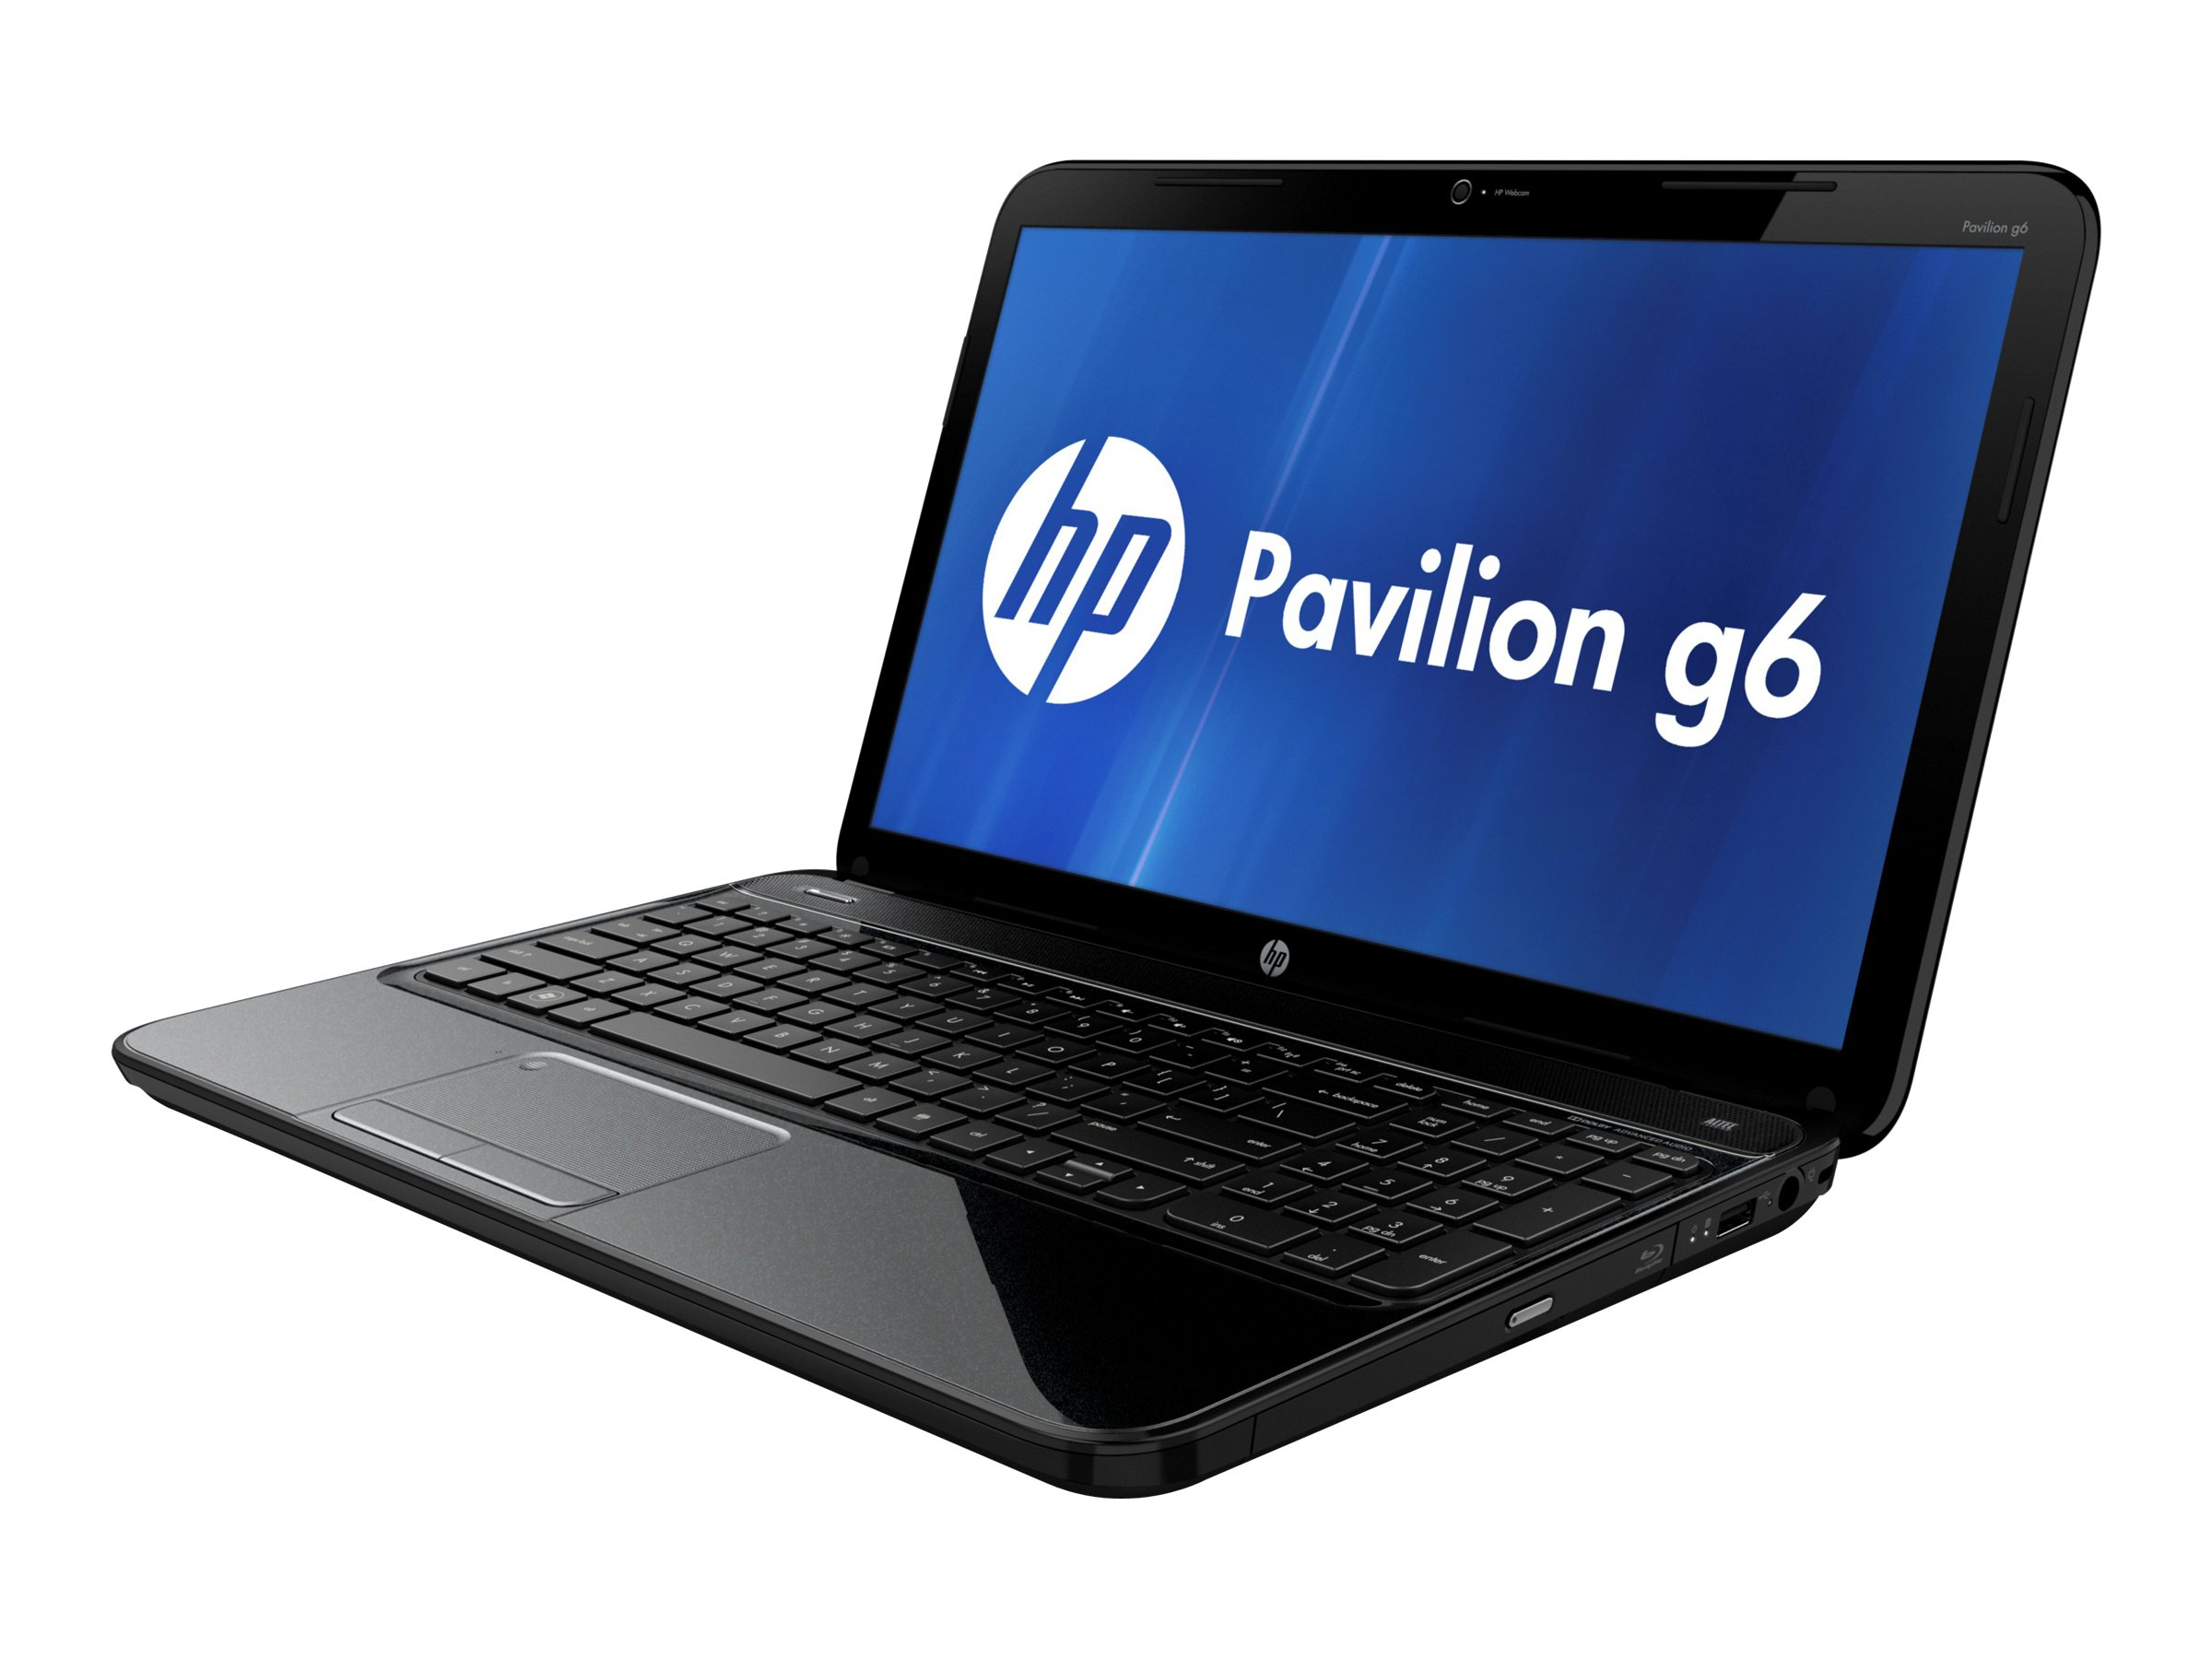 HP Pavilion G6-2129nr : 2.5GHz Core i5 15.6in display